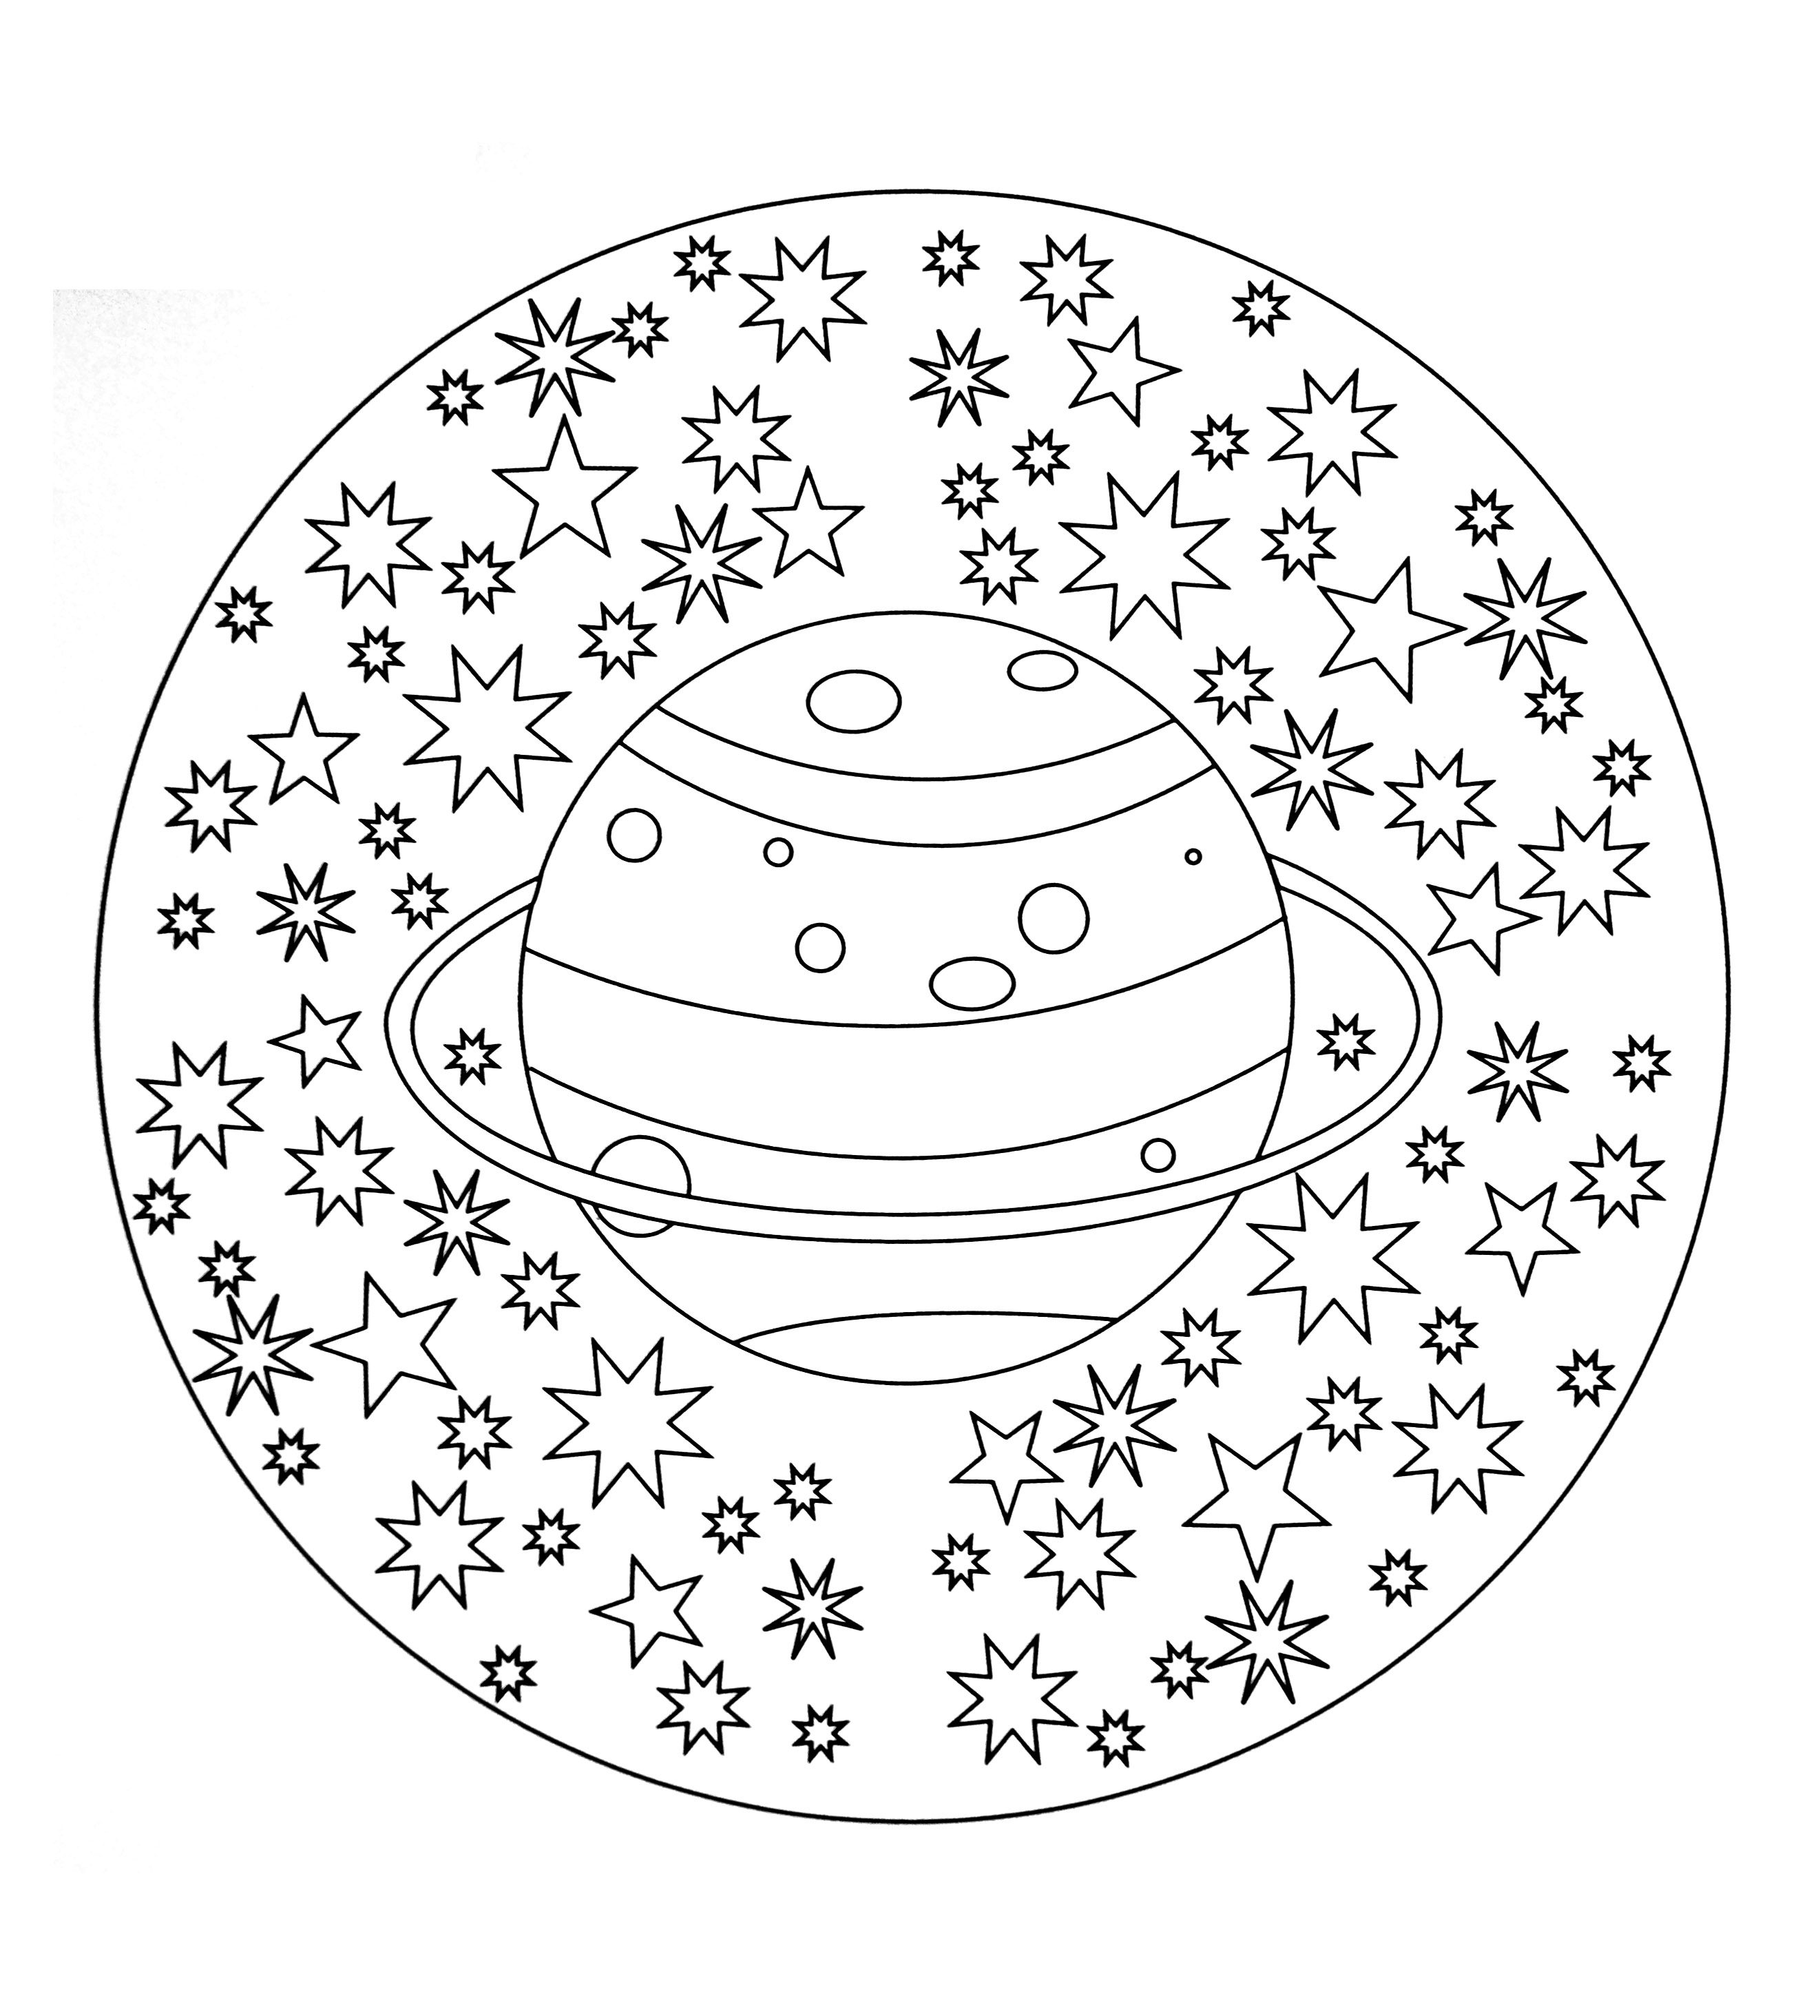 simple mandala 19 from the gallery kids mandalas - Simple Mandala Coloring Pages Kid